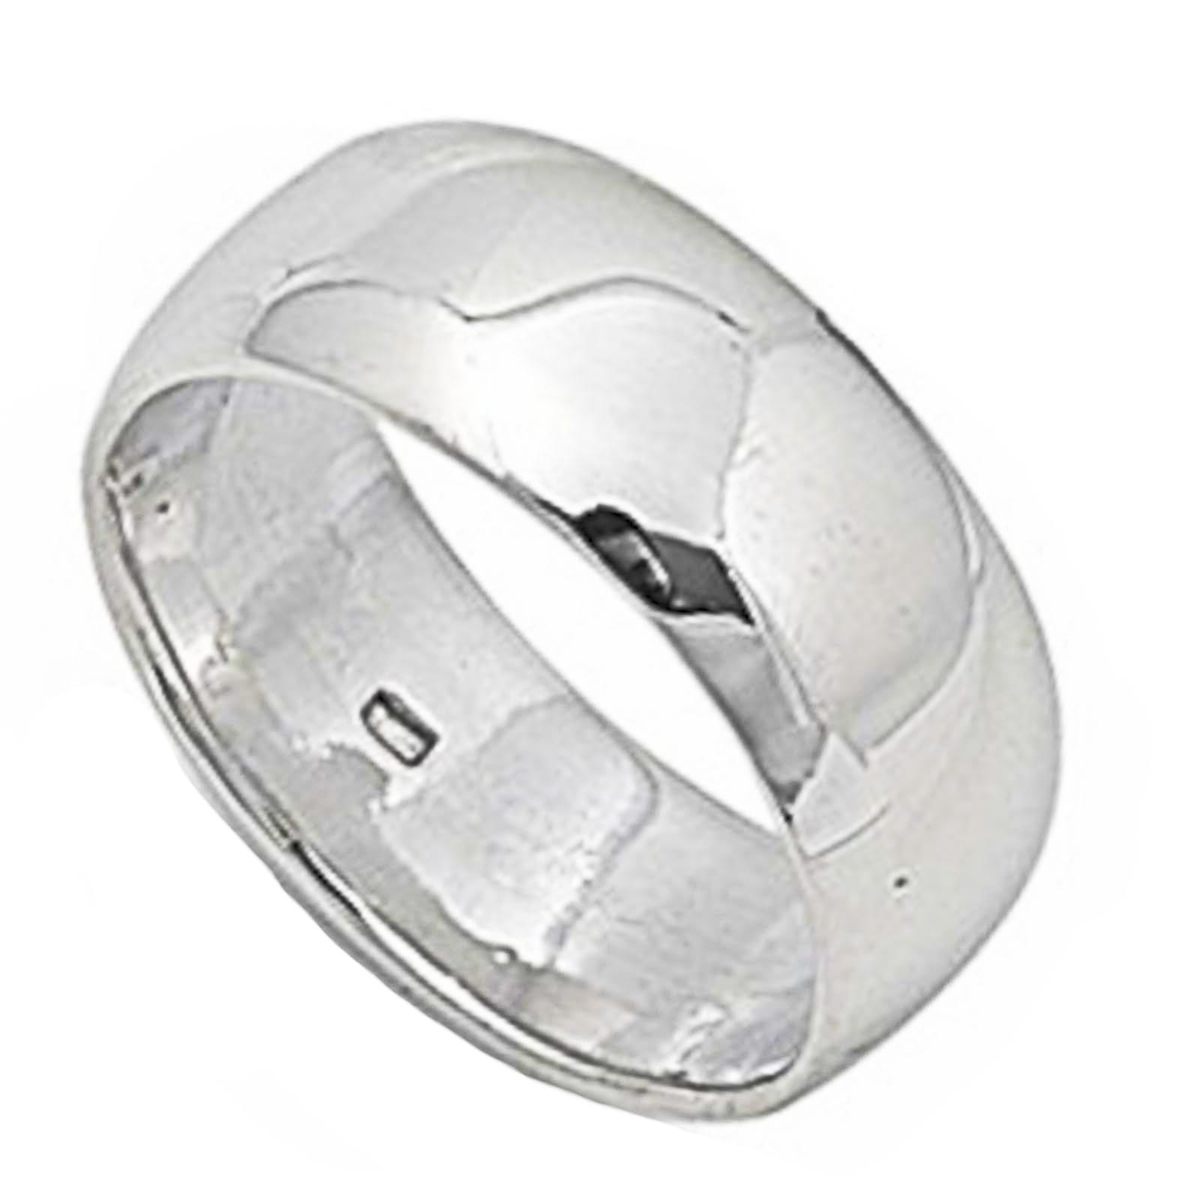 Round Plain Solid Wedding Band 8 MM .925 Sterling Silver Ring Sizes 5-14